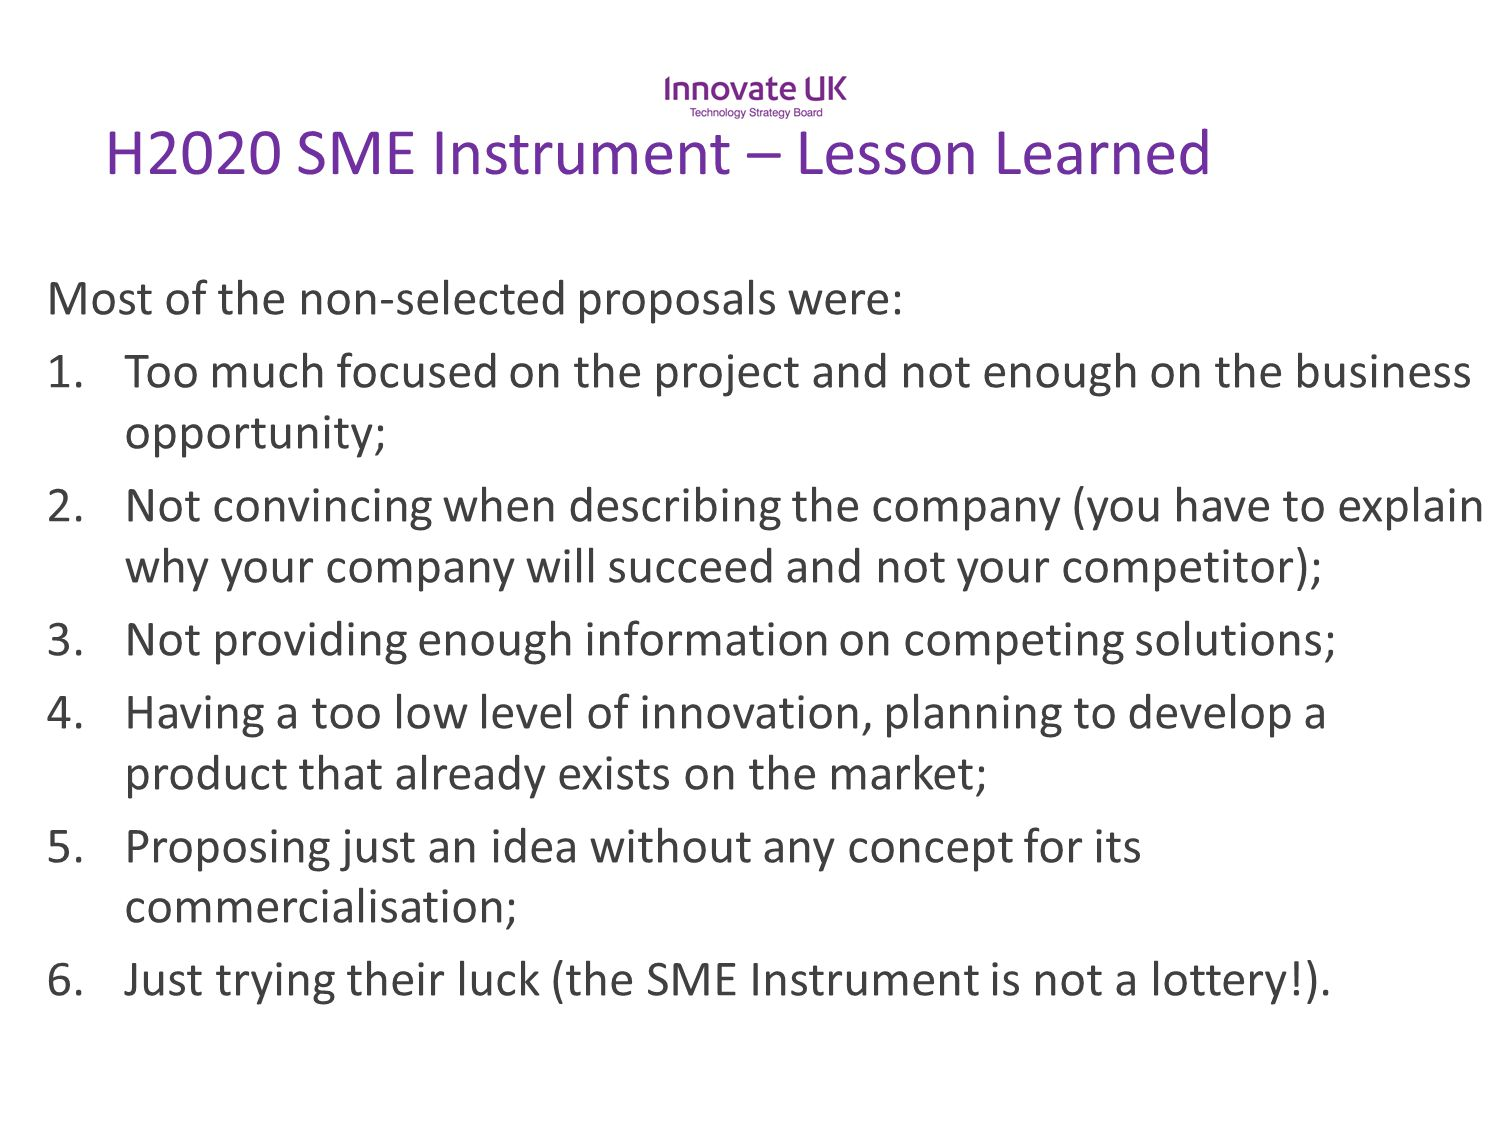 H2020 SME Instrument – Lesson Learned